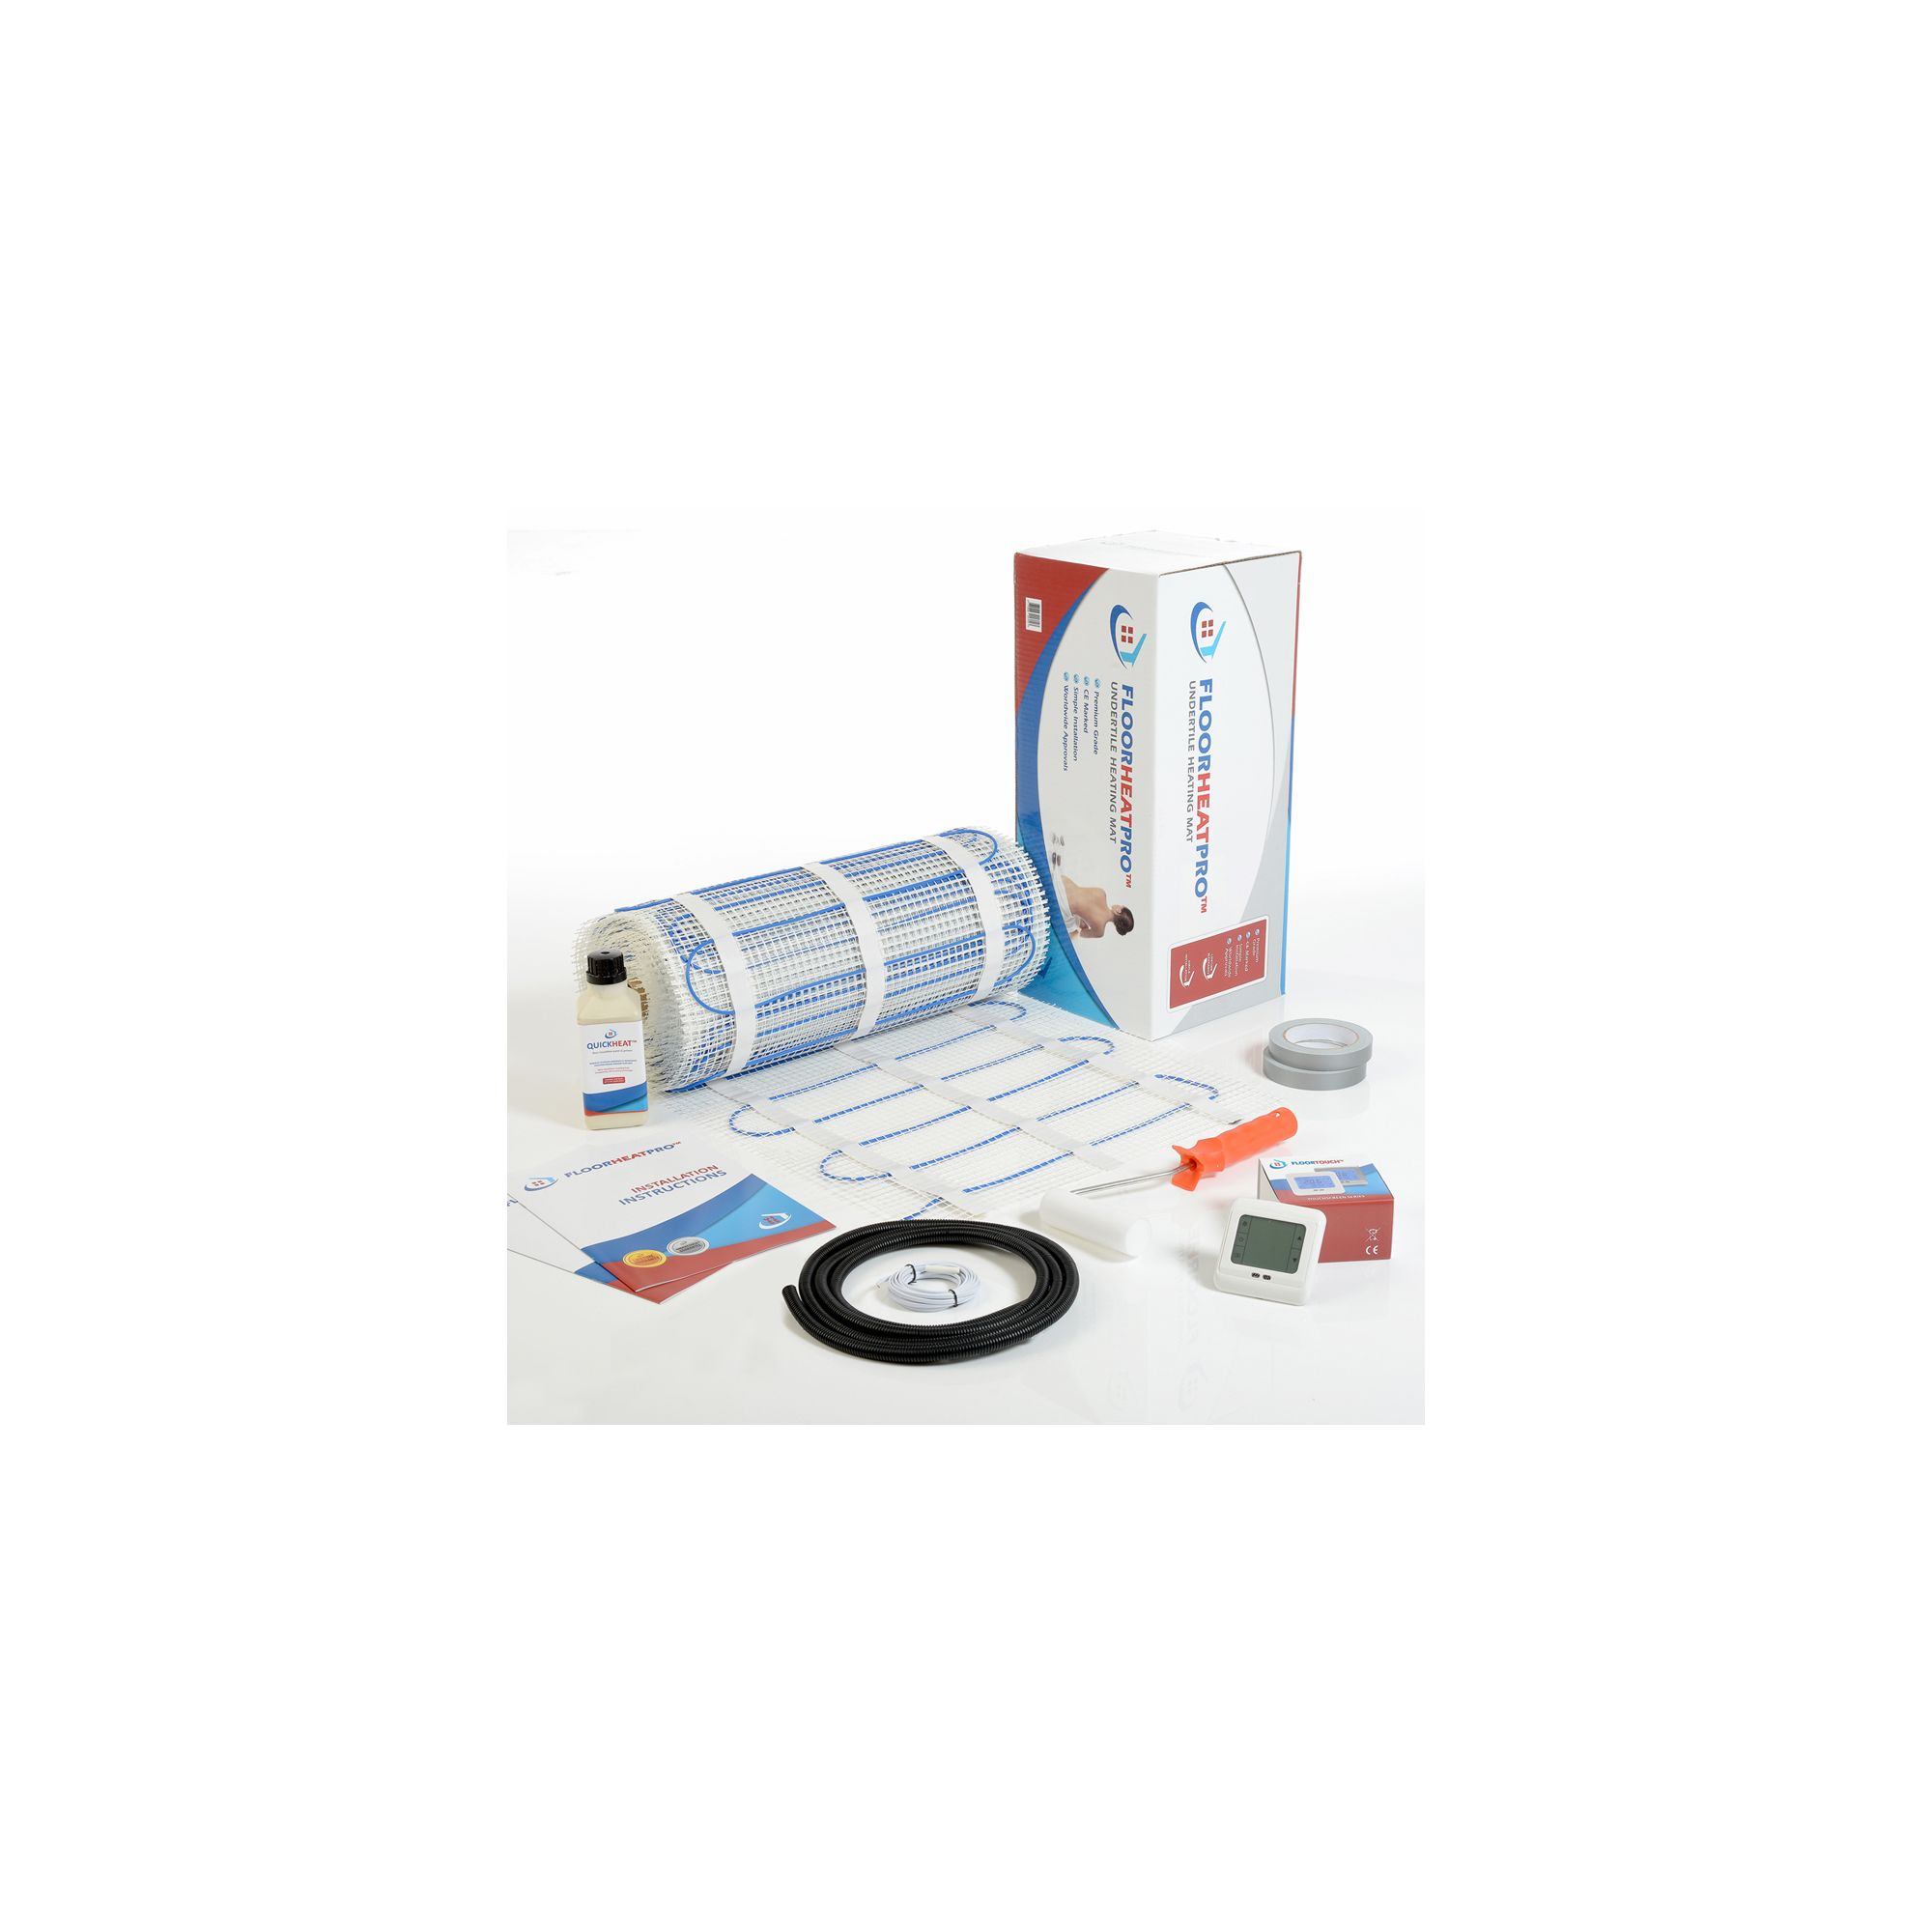 18.0m2 - Underfloor Electric Heating Kit 200w/m2 - Tiles at Tesco Direct